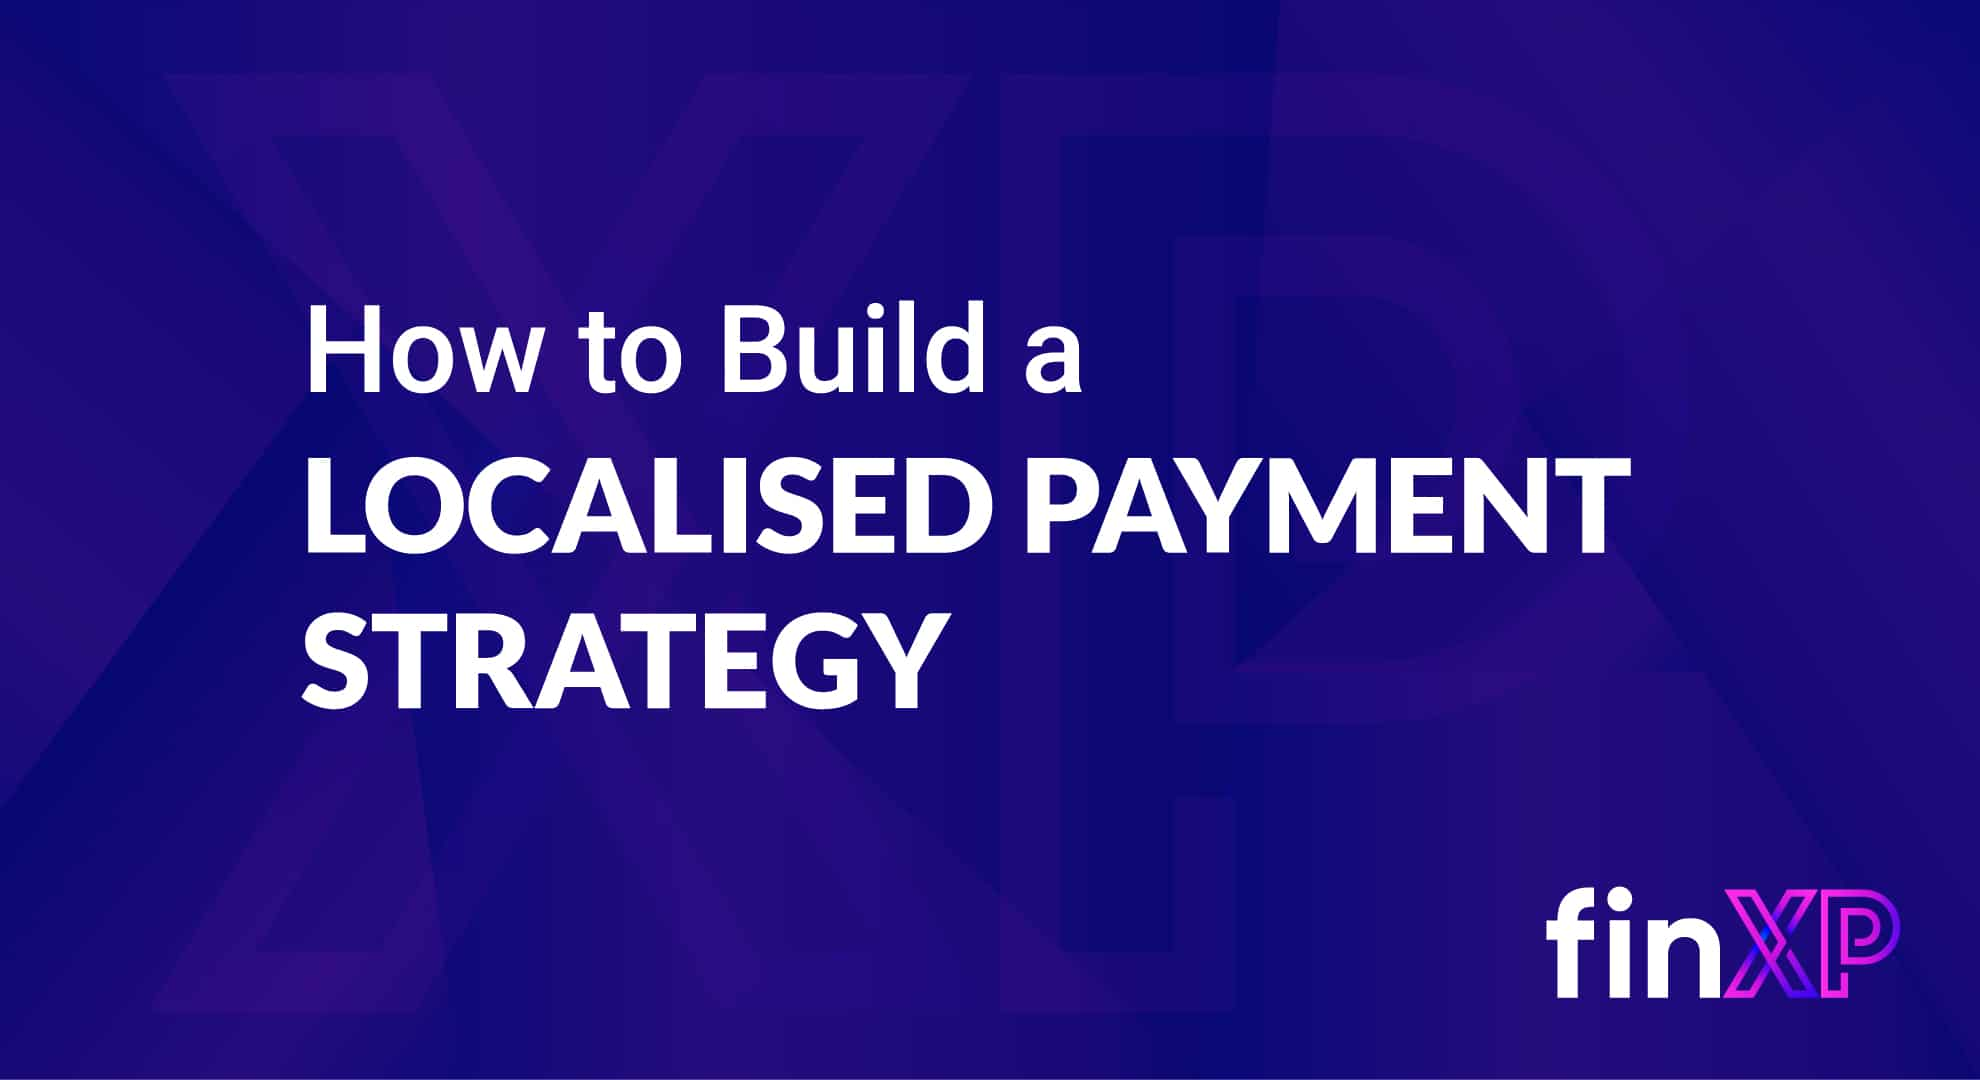 Global Payments: Building Local Payments Strategies